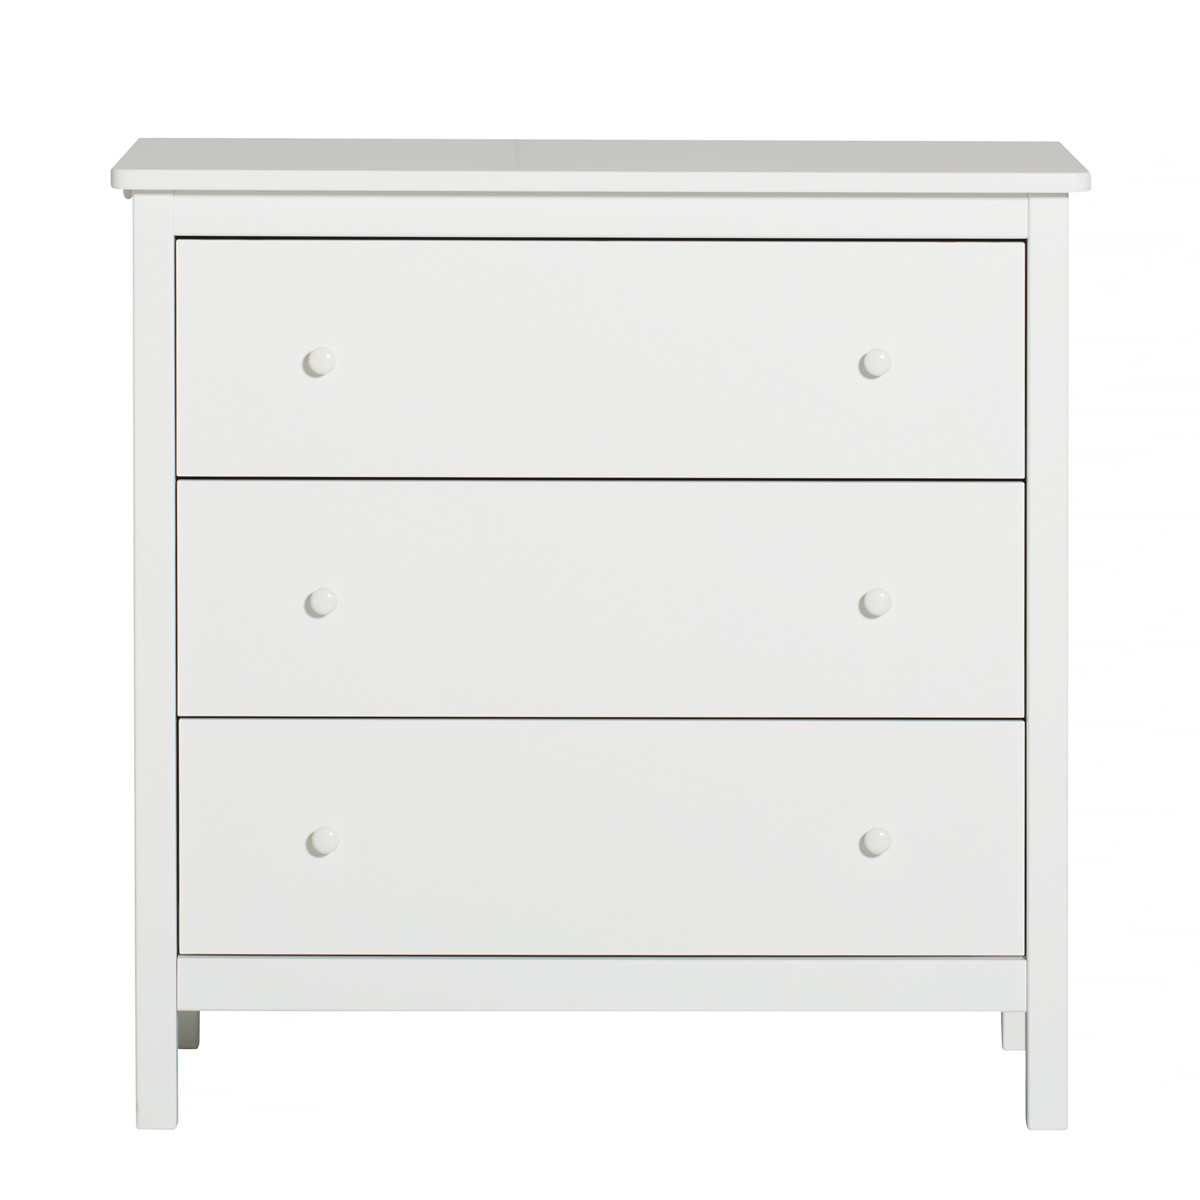 Commode Seaside avec portant coulissant Blanc Oliver Furniture